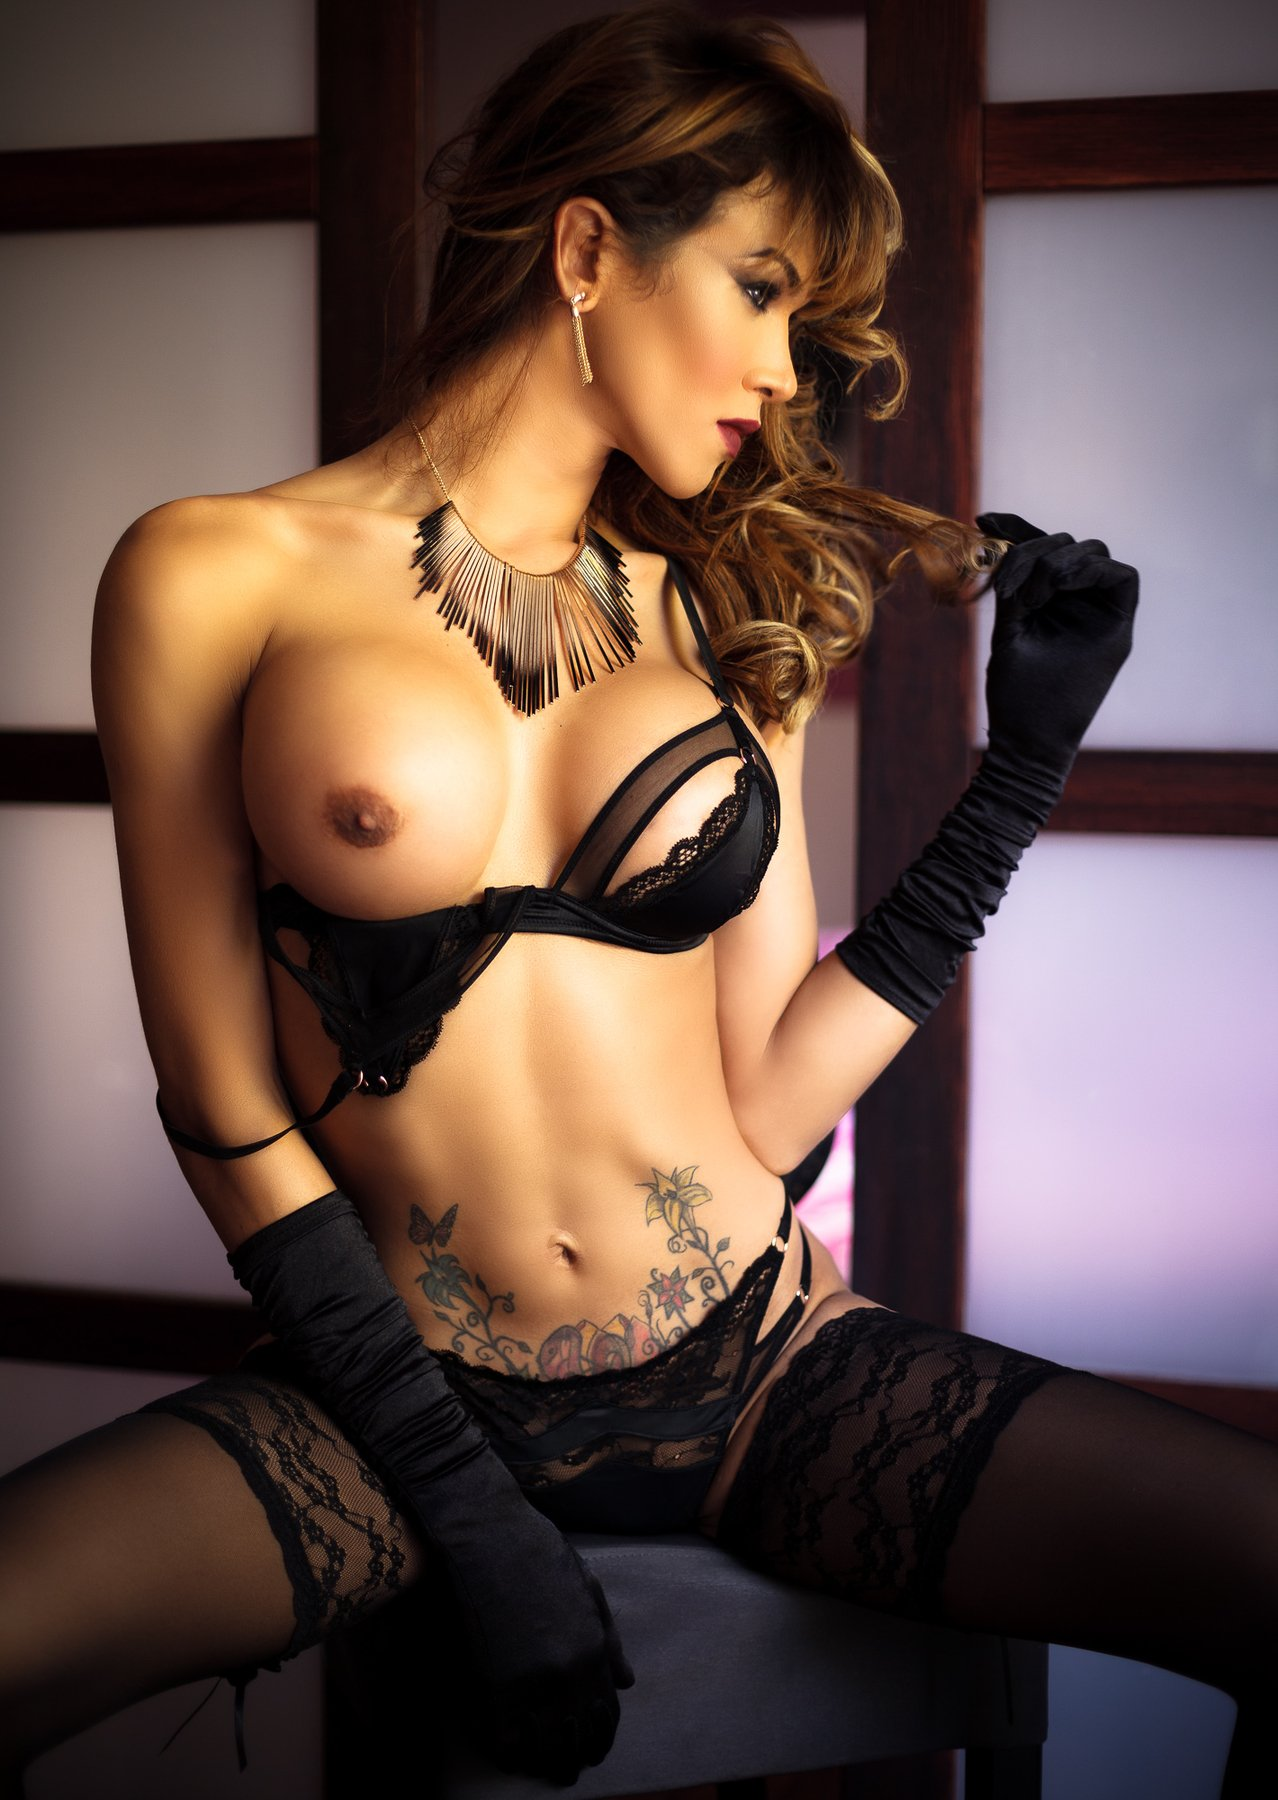 from Moshe transsexual escort hong kong